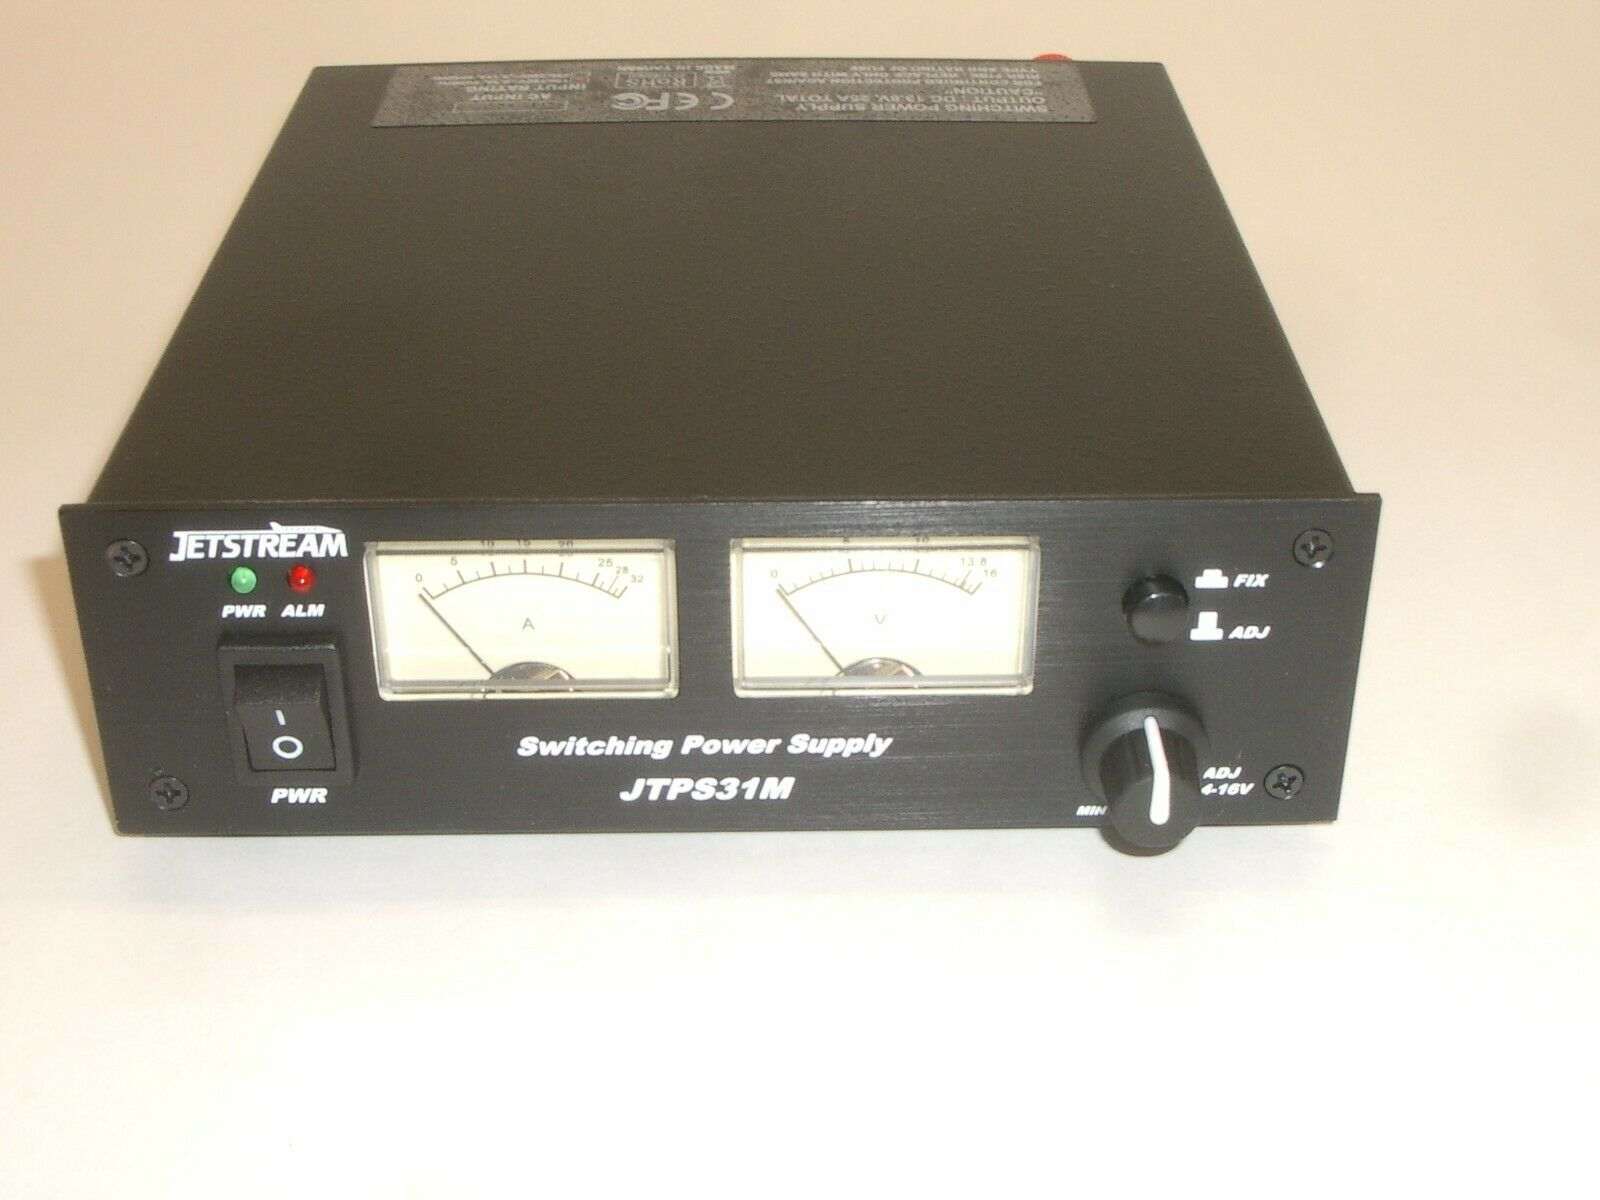 JETSTREAM JTPS31MB2 13.8VDC 25 AMP SWITCHING DC POWER SUPPLY w/ DUAL METER. Available Now for 129.95